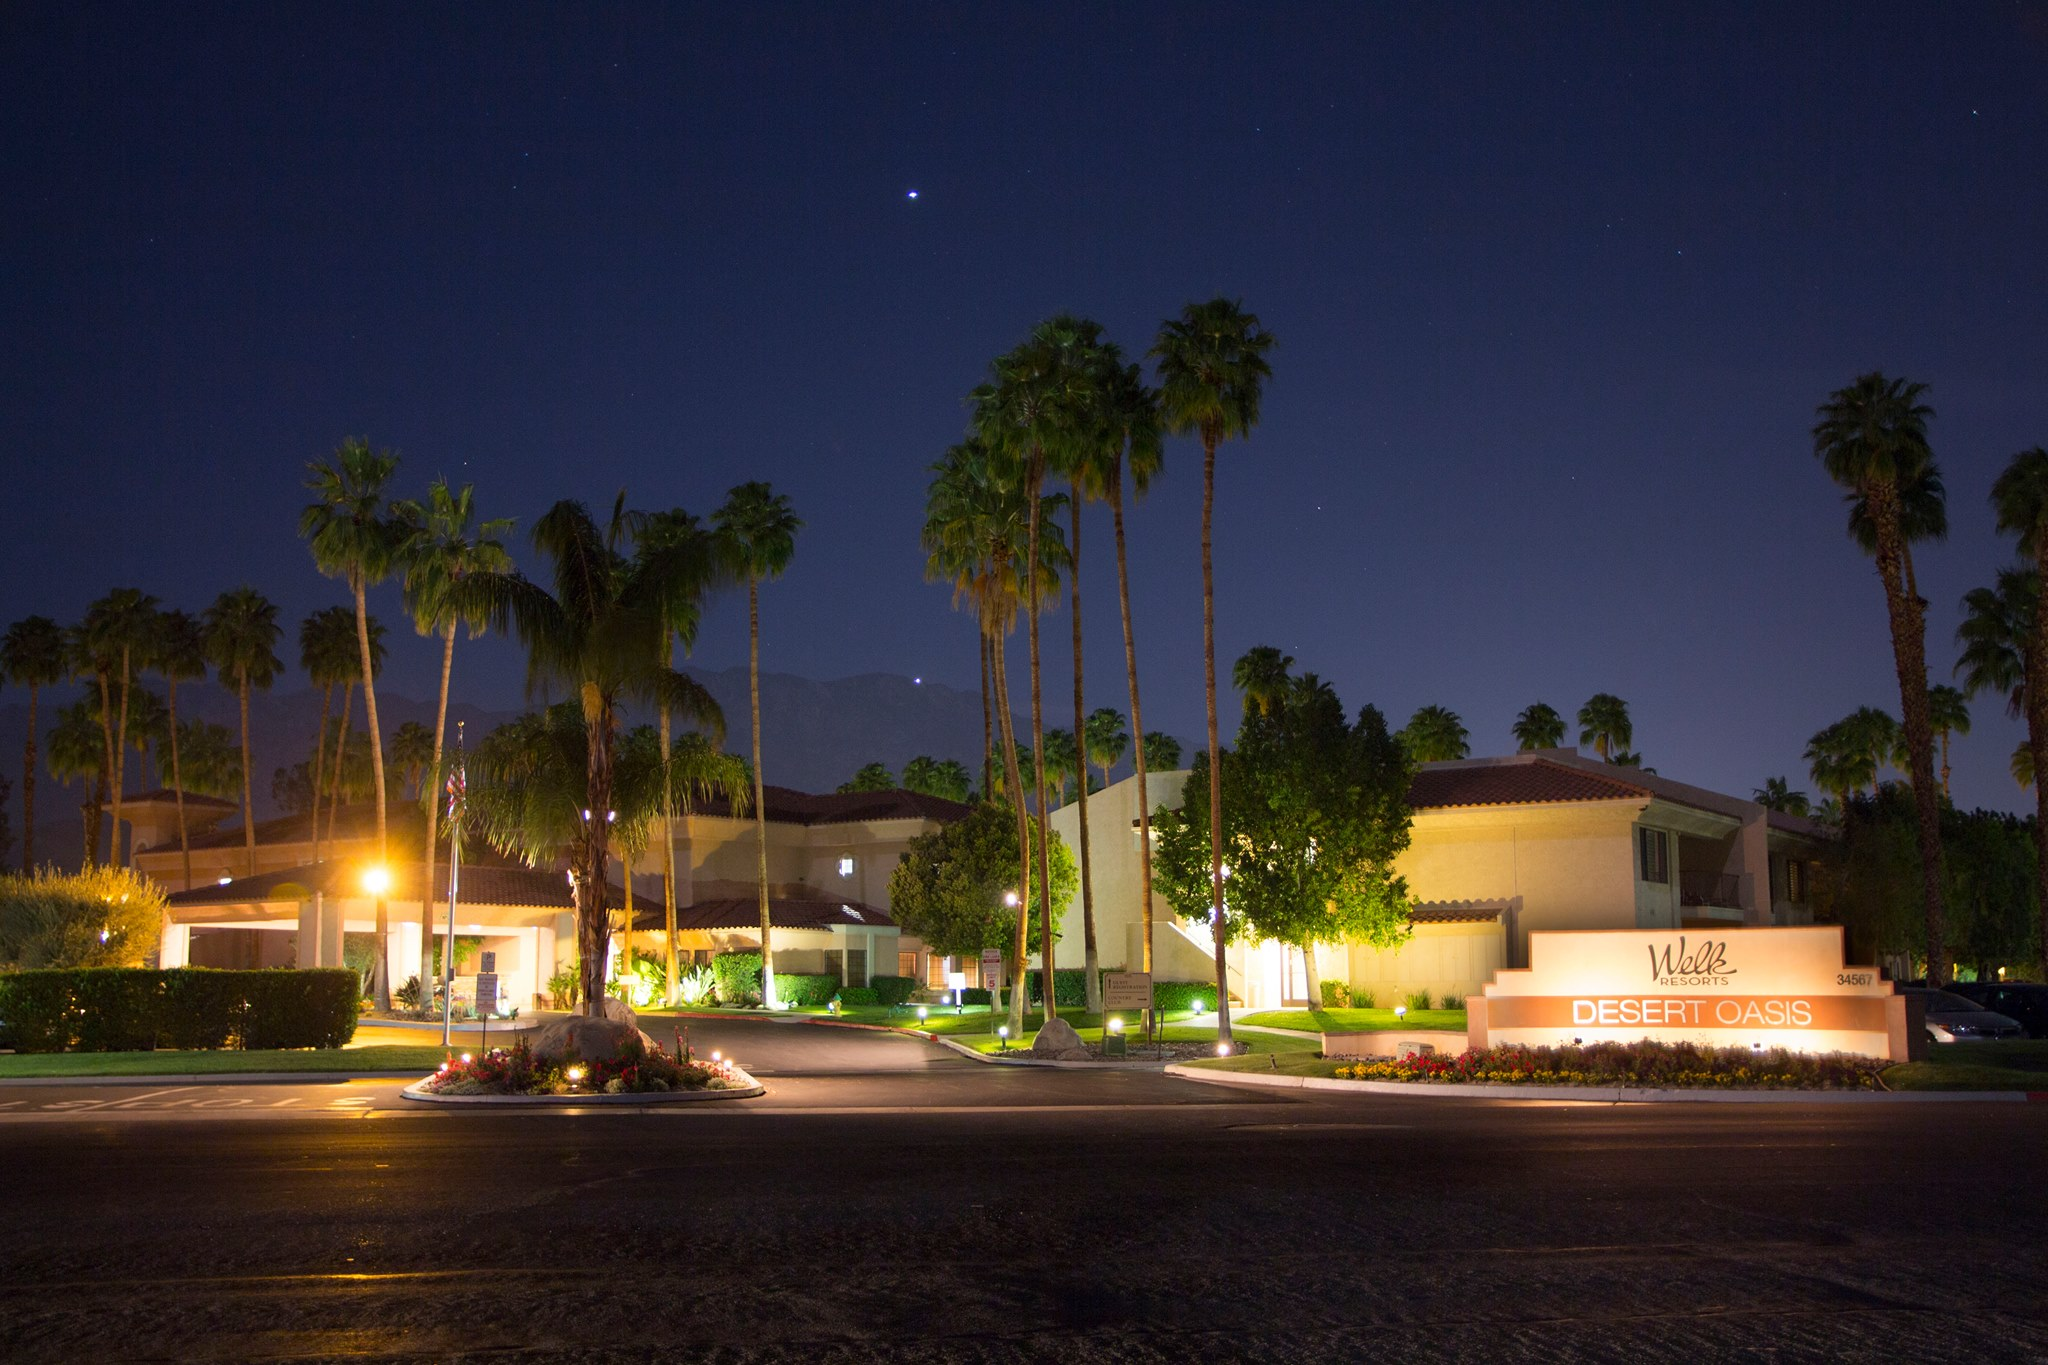 Welk Resorts Palm Springs Desert Oasis image